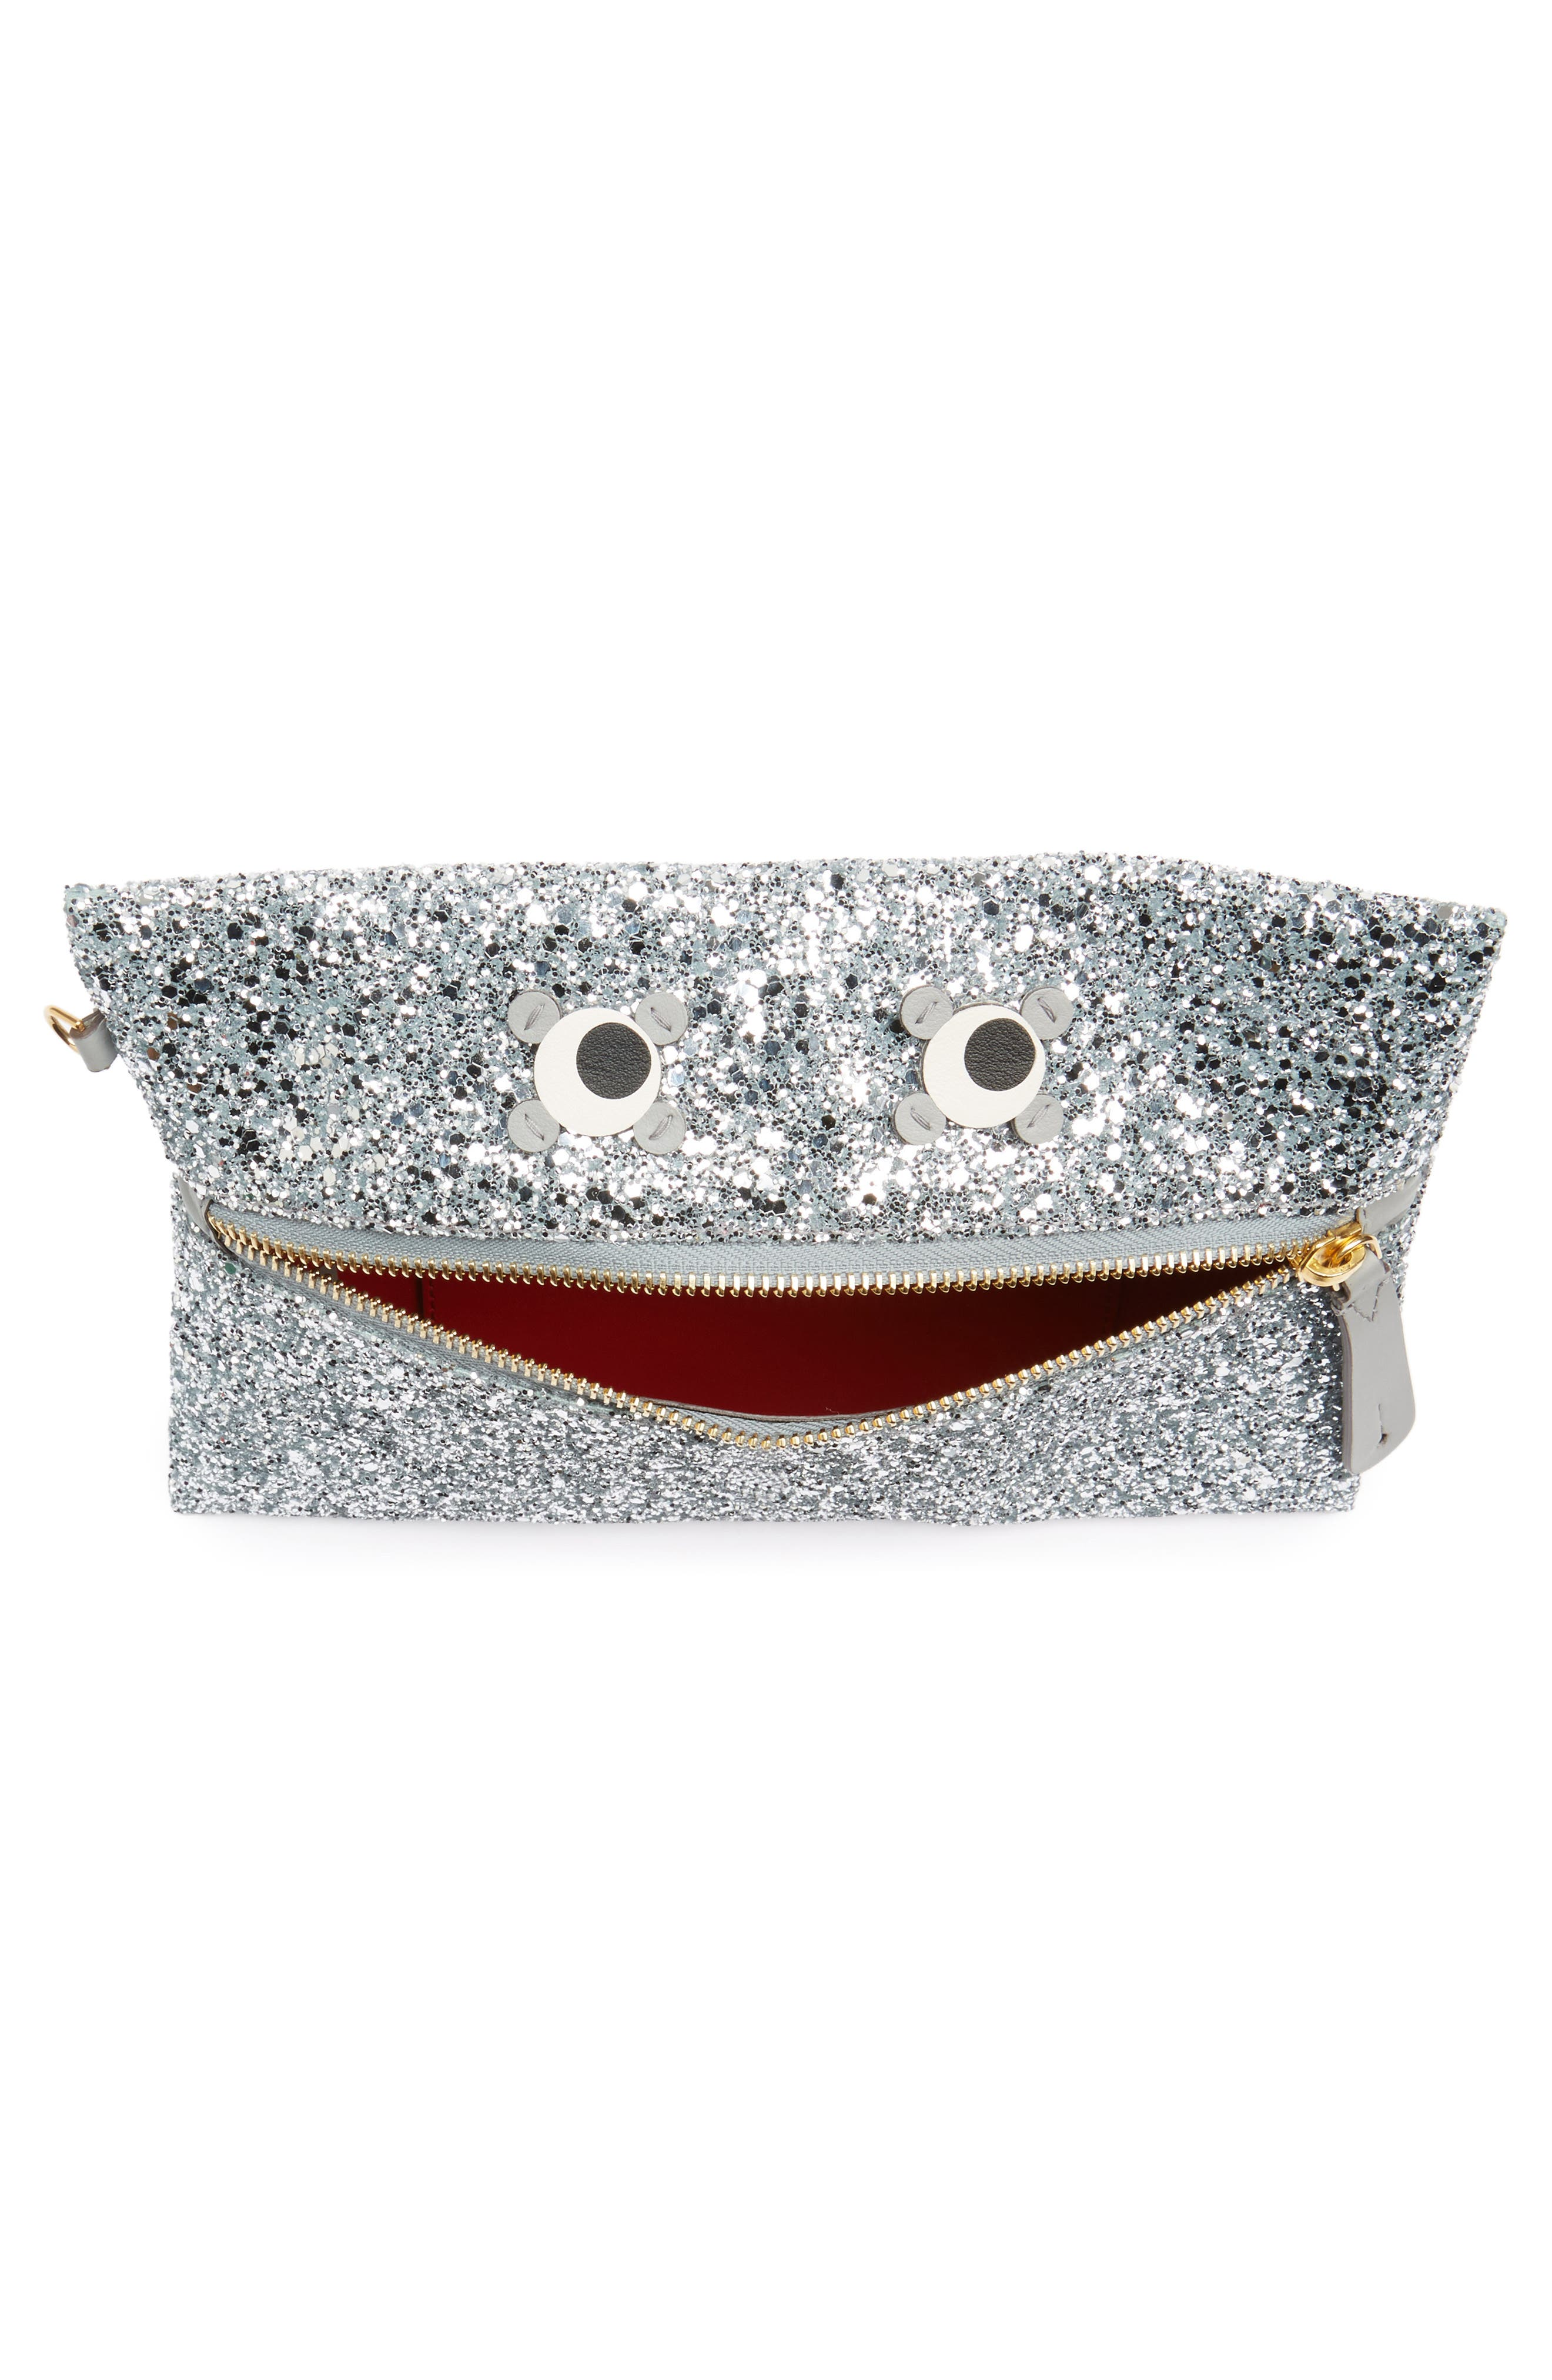 Eyes Circulus Glitter Pouch,                             Alternate thumbnail 8, color,